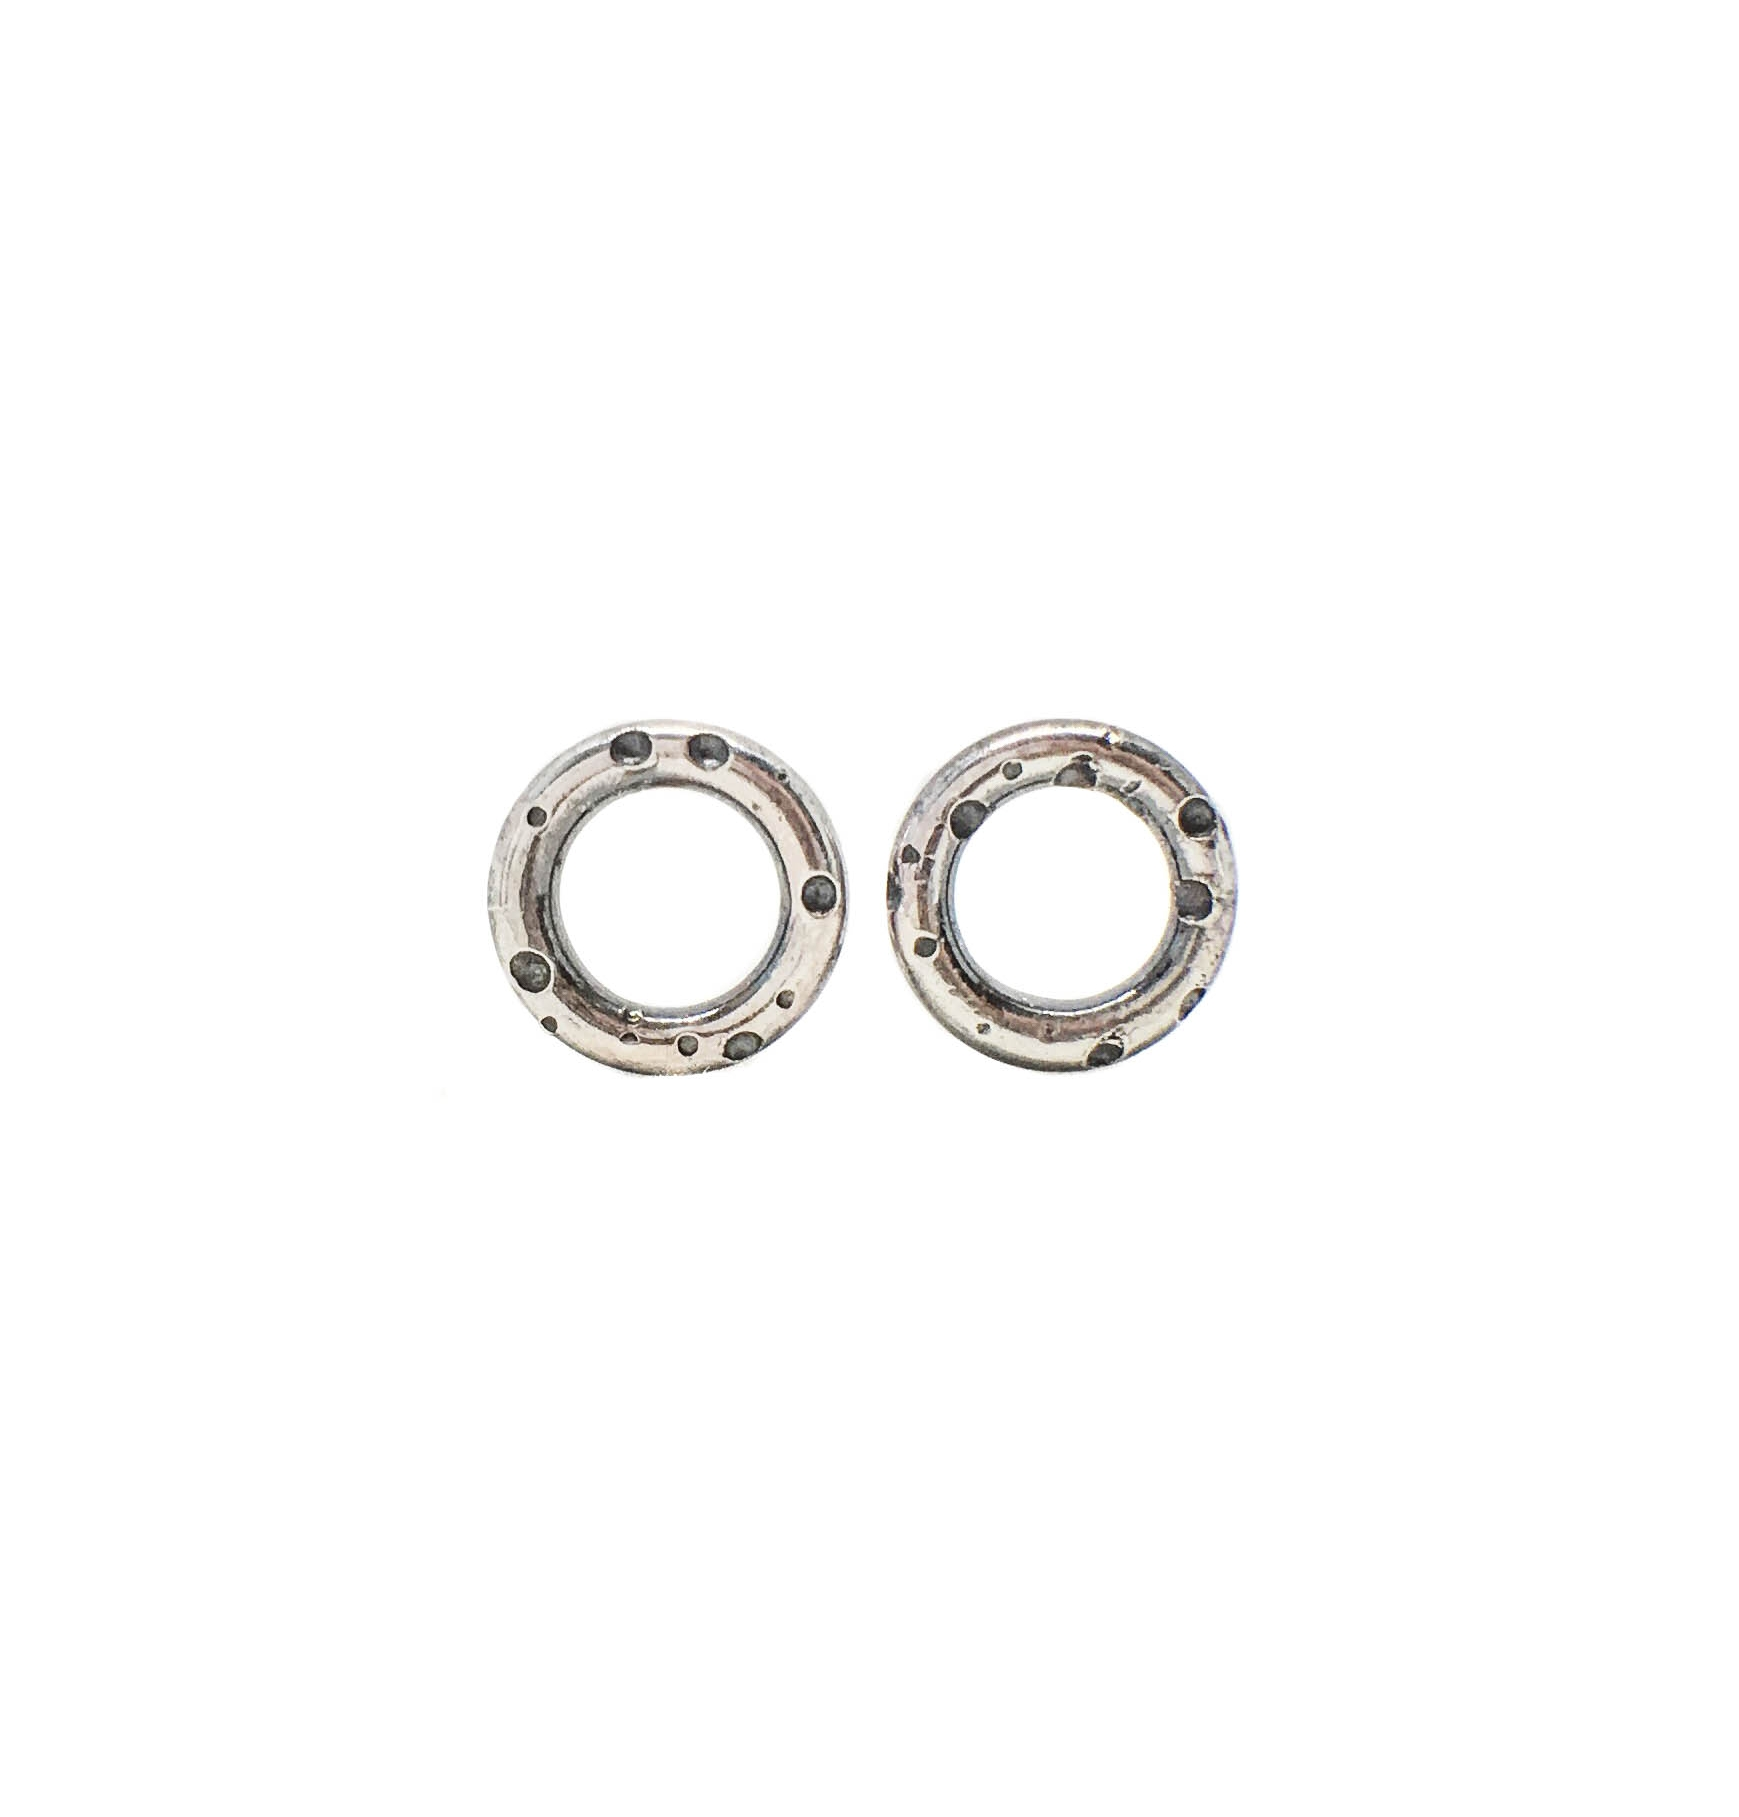 7c889a279 open silver studs with over the moon pattern